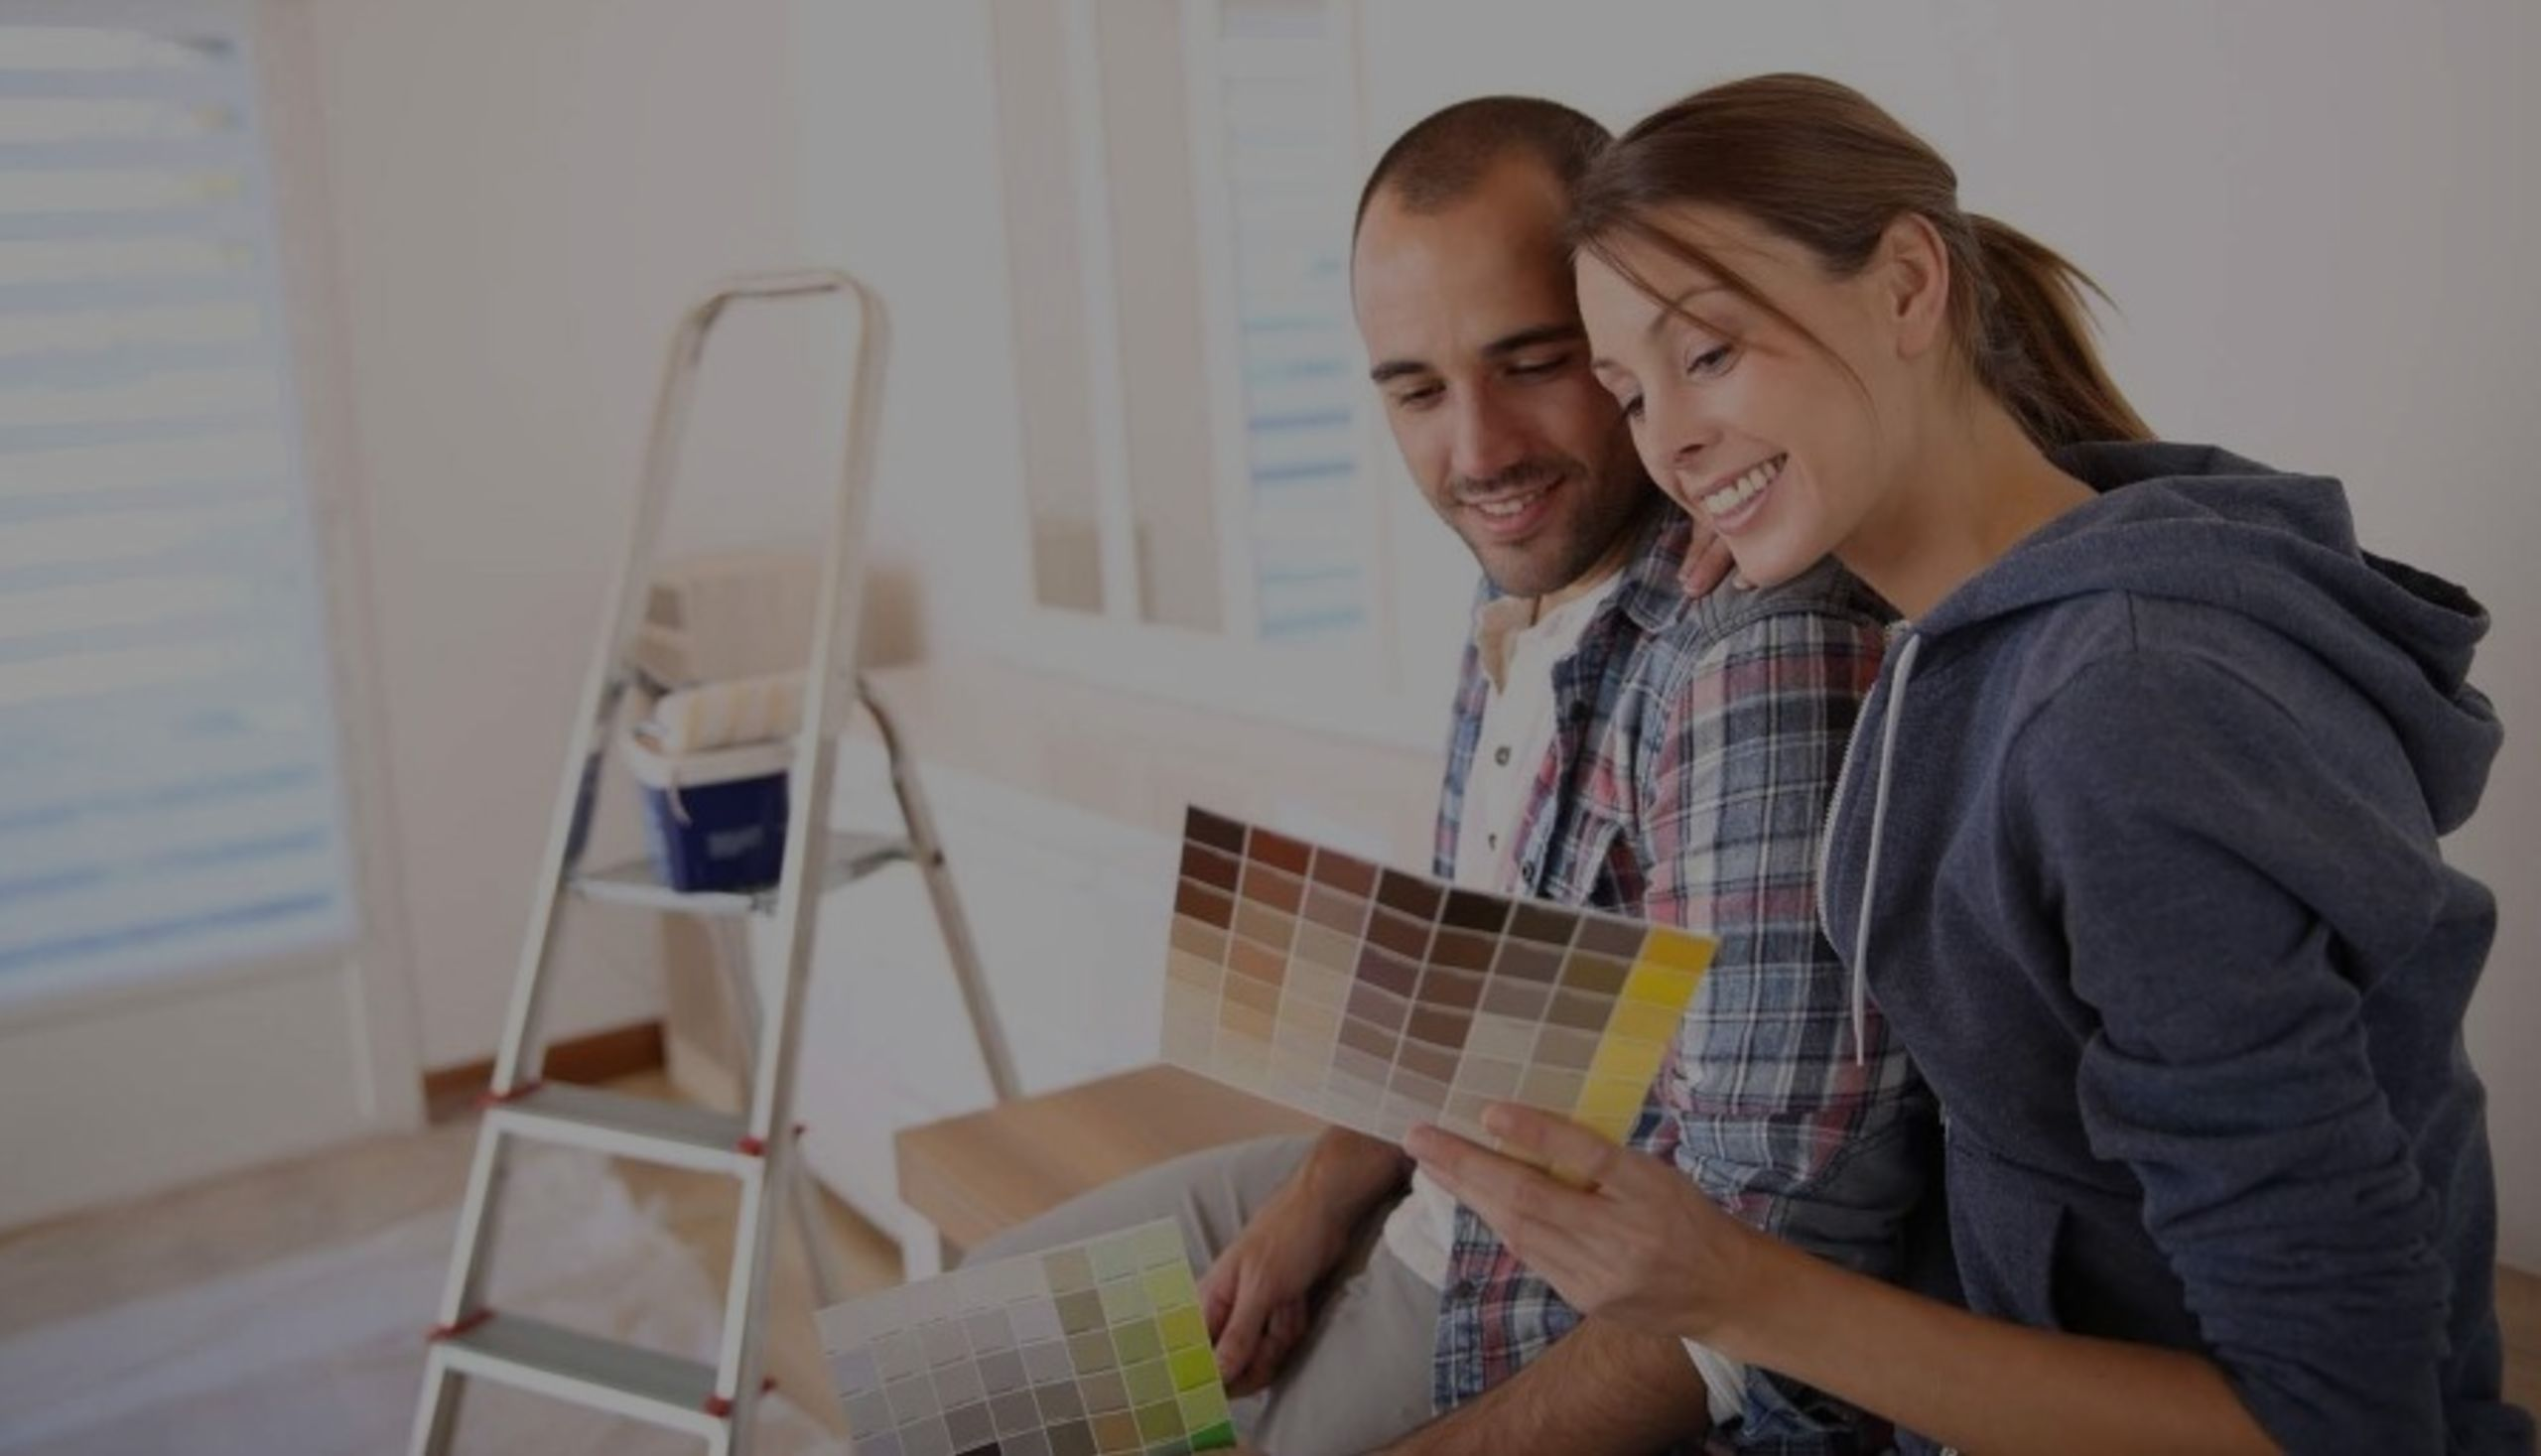 Fall home improvements for less than $500